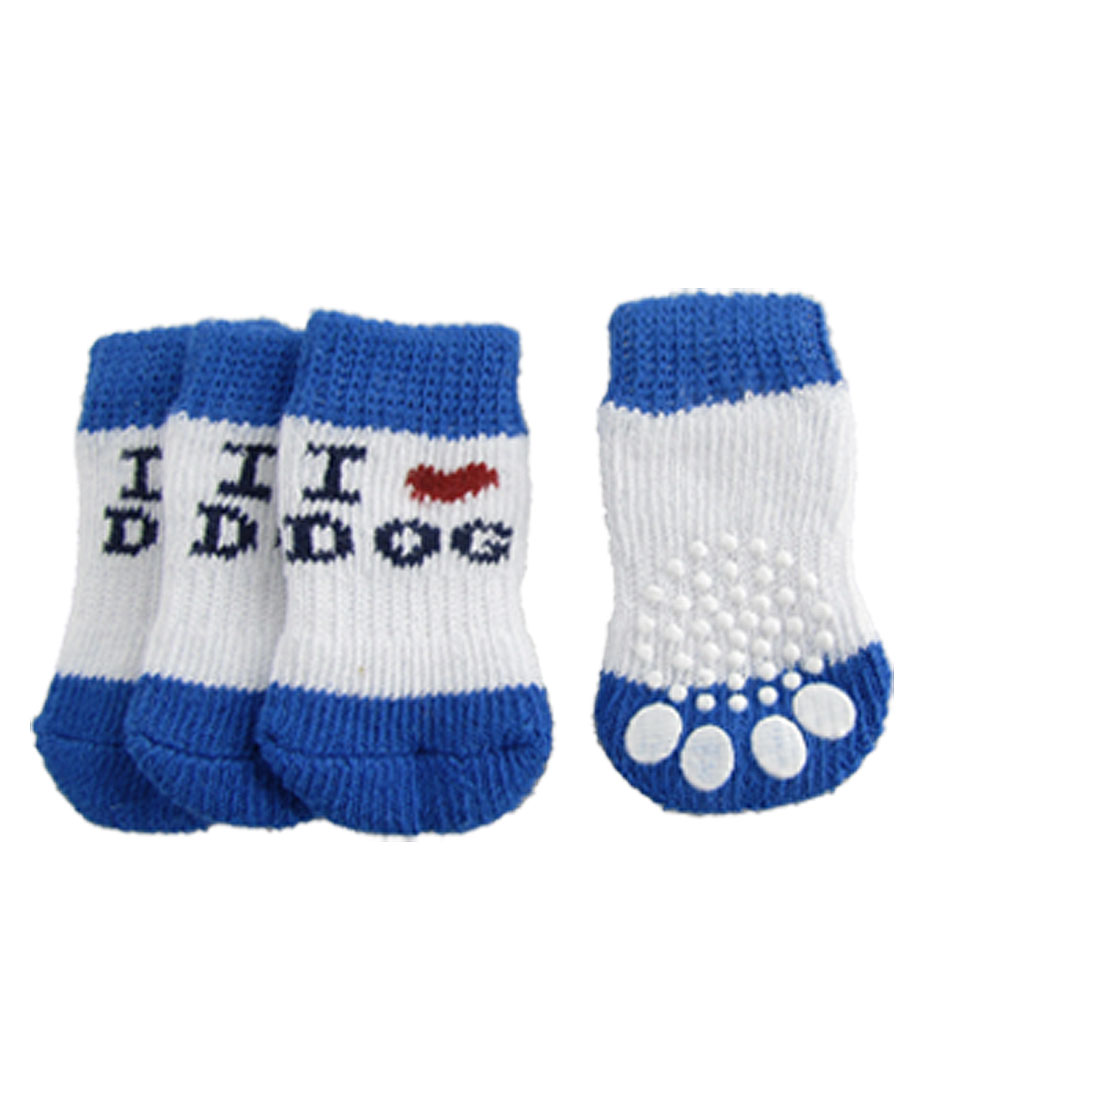 Antislip Bottom Letter Pattern Winter Socks Blue White for Dog